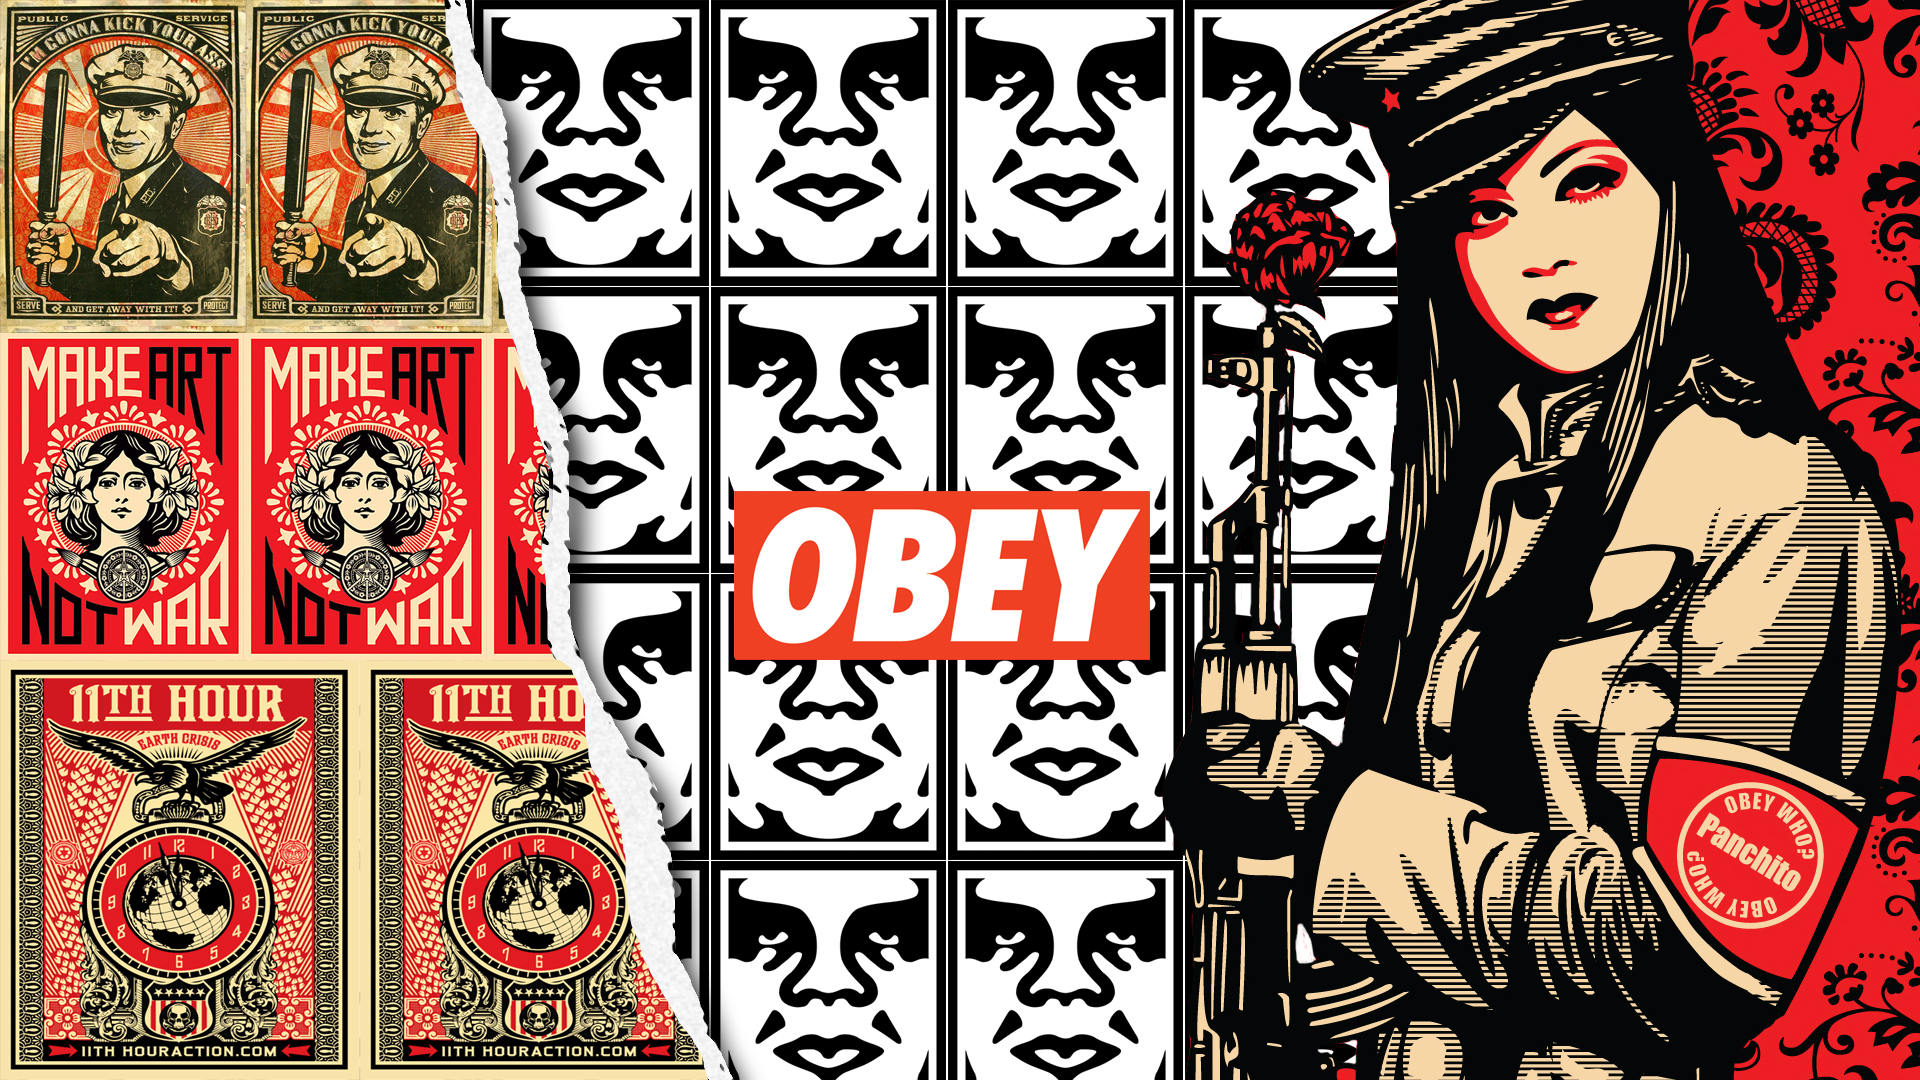 Obey Obey Hd wallpaper 1920x1080